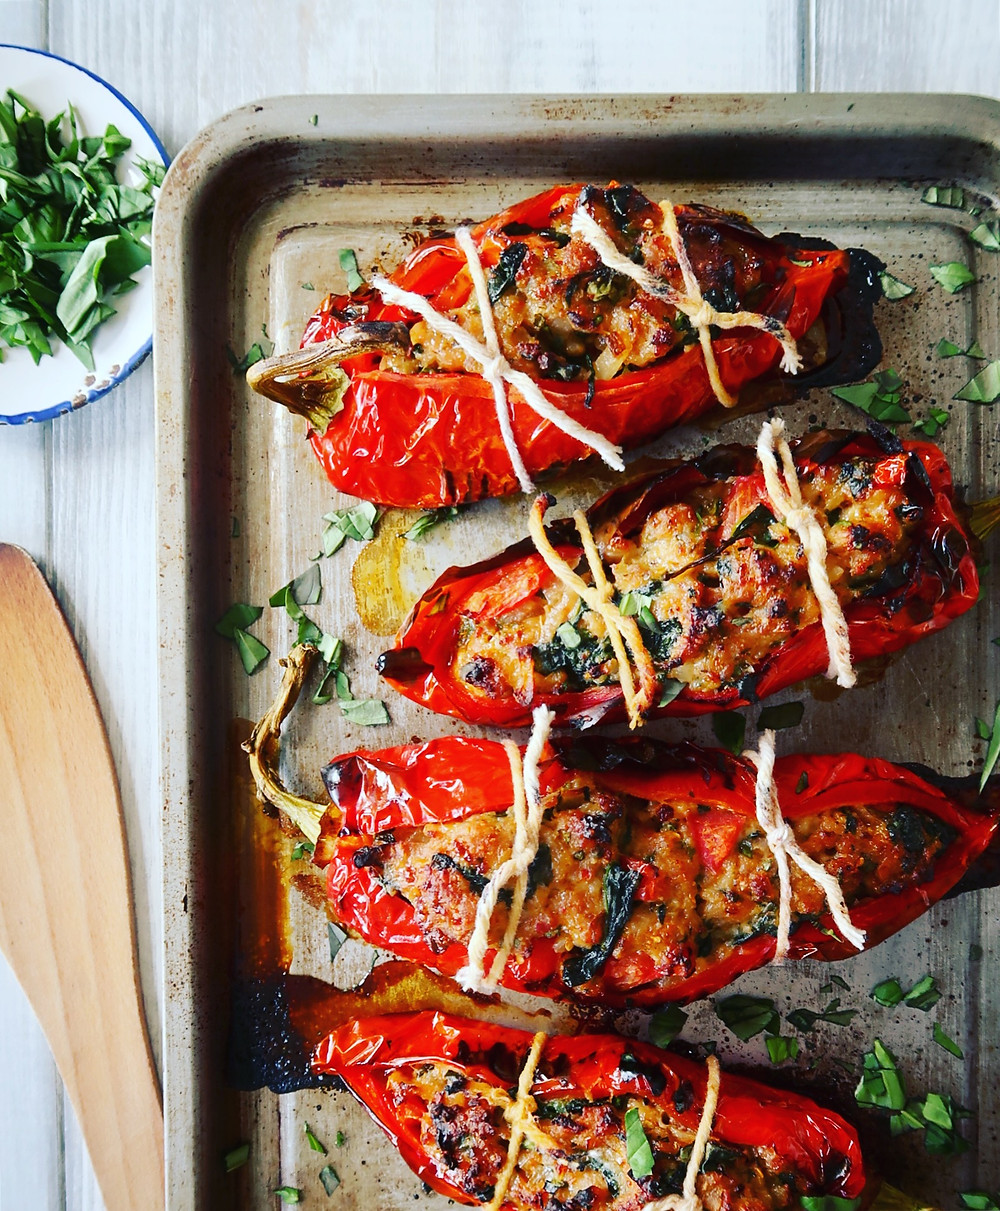 Spicy Sausage Stuffed Romano Peppers